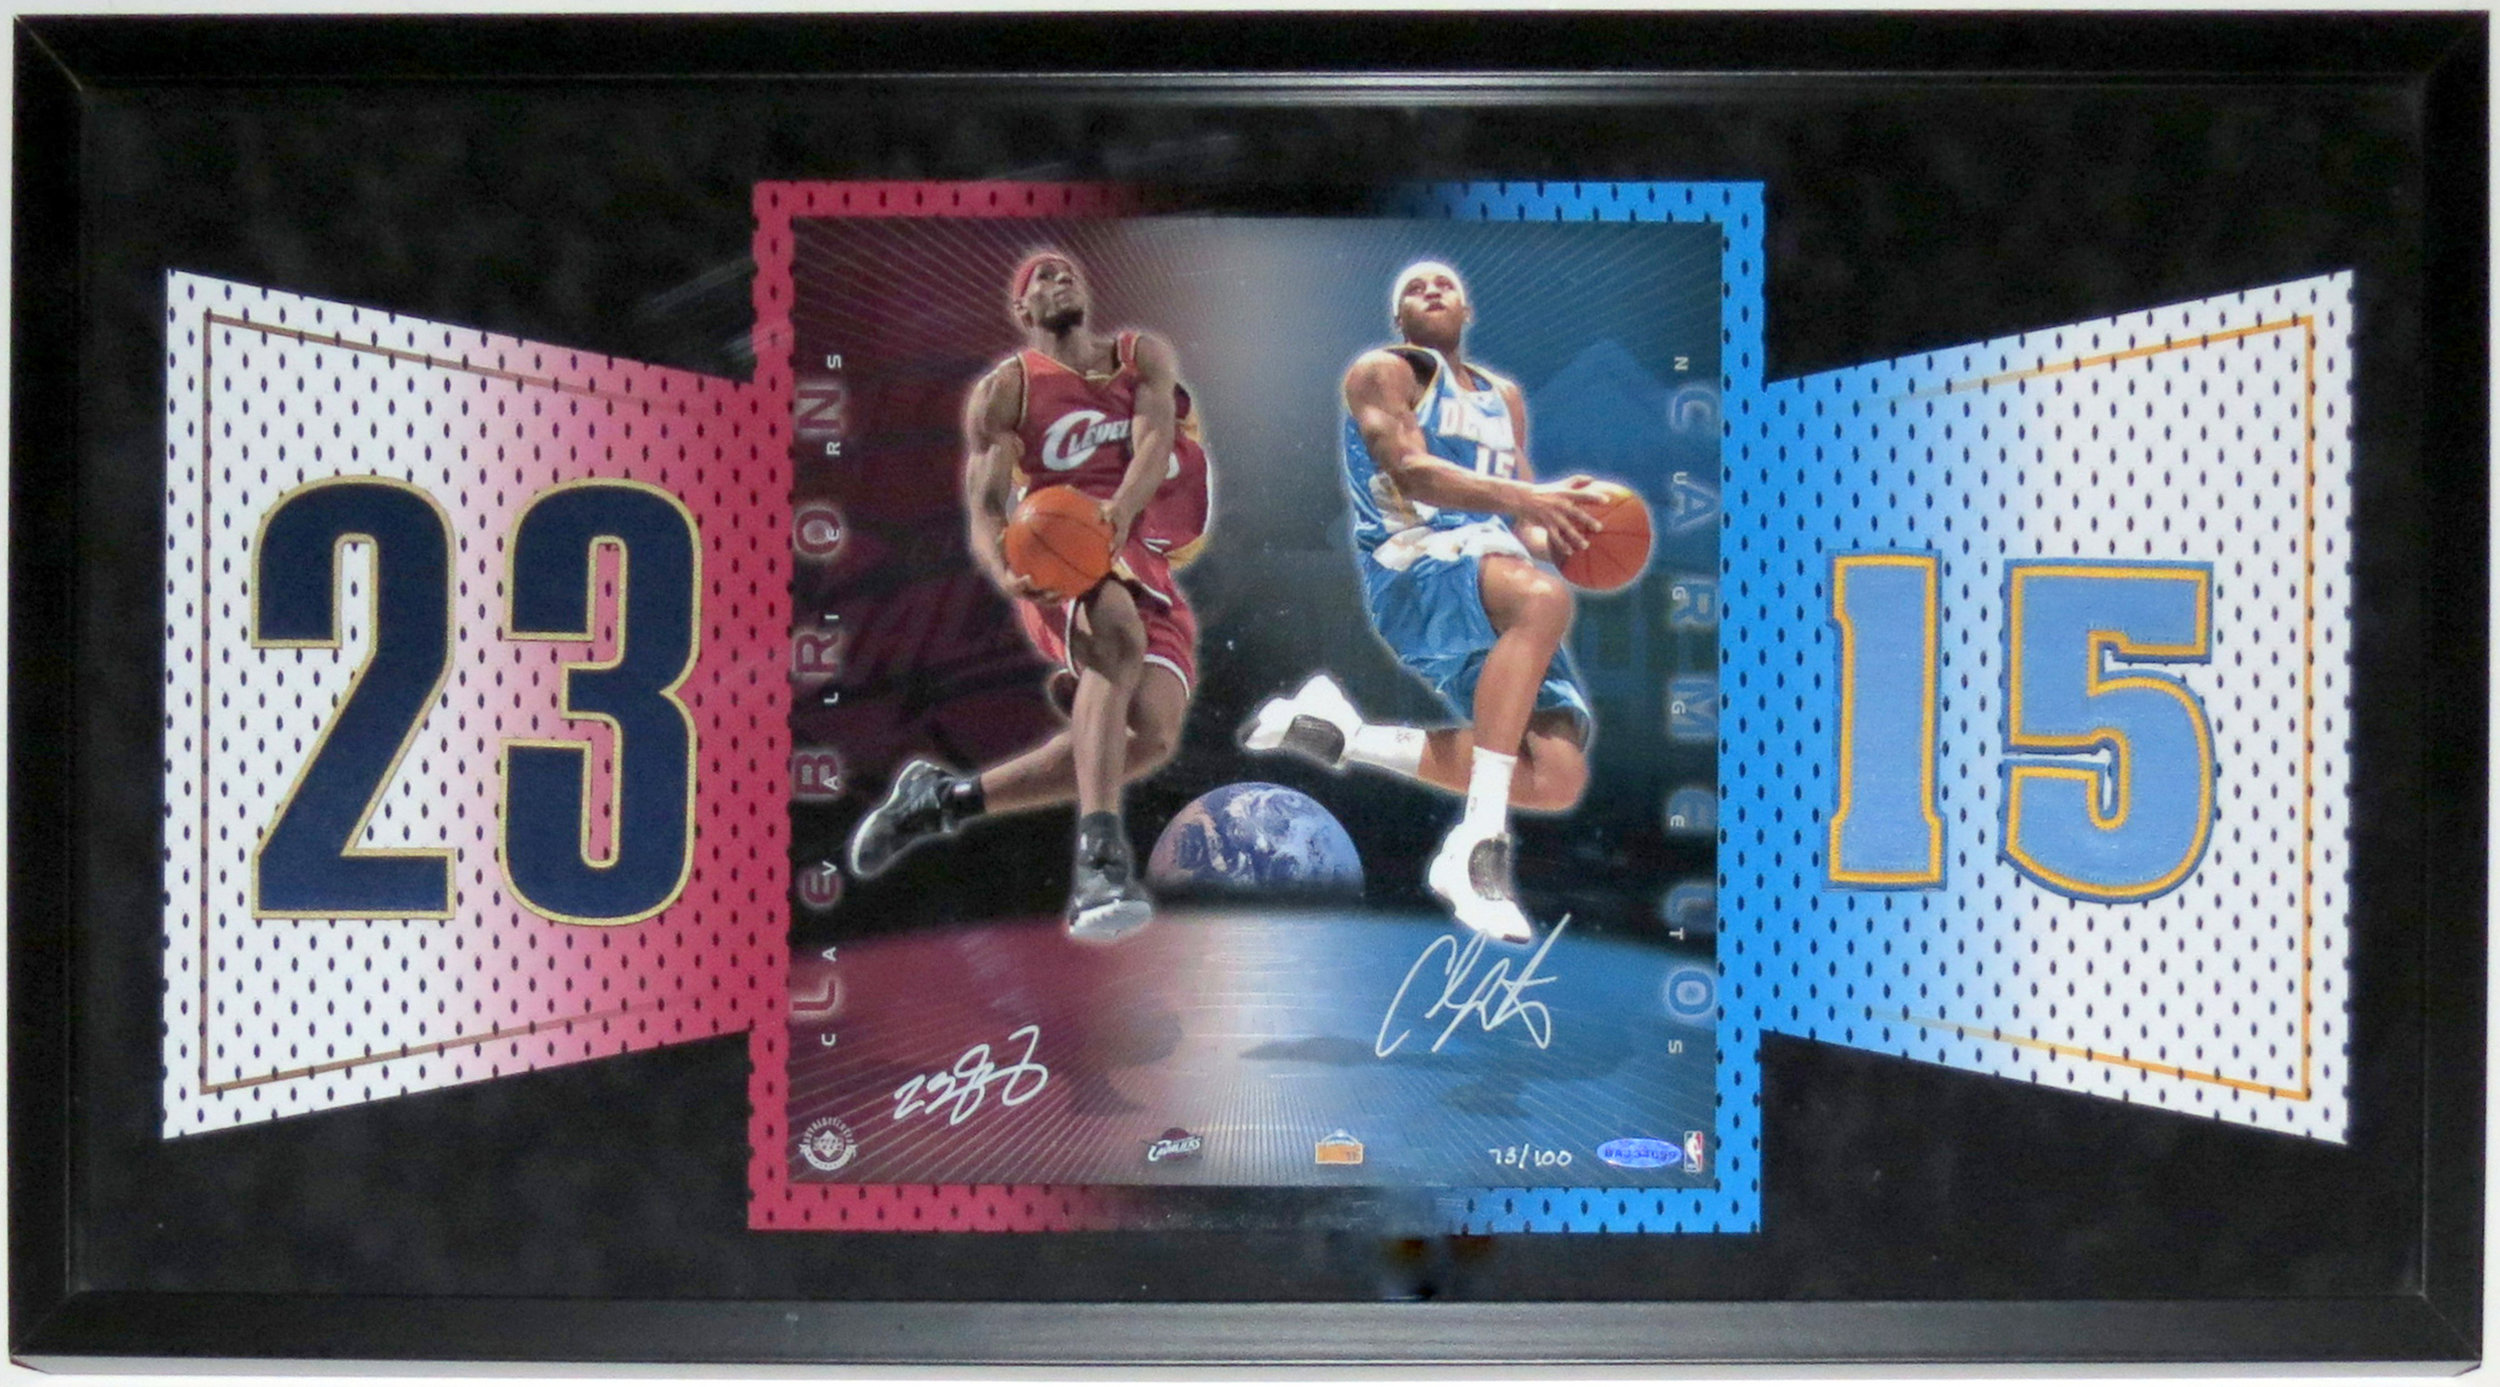 LeBron James & Carmelo Anthony Dual Autographed Rookie Jersey Numbers Photo Limited #'d /100 - UDA Upper Deck Authenticated COA - Professionally Framed